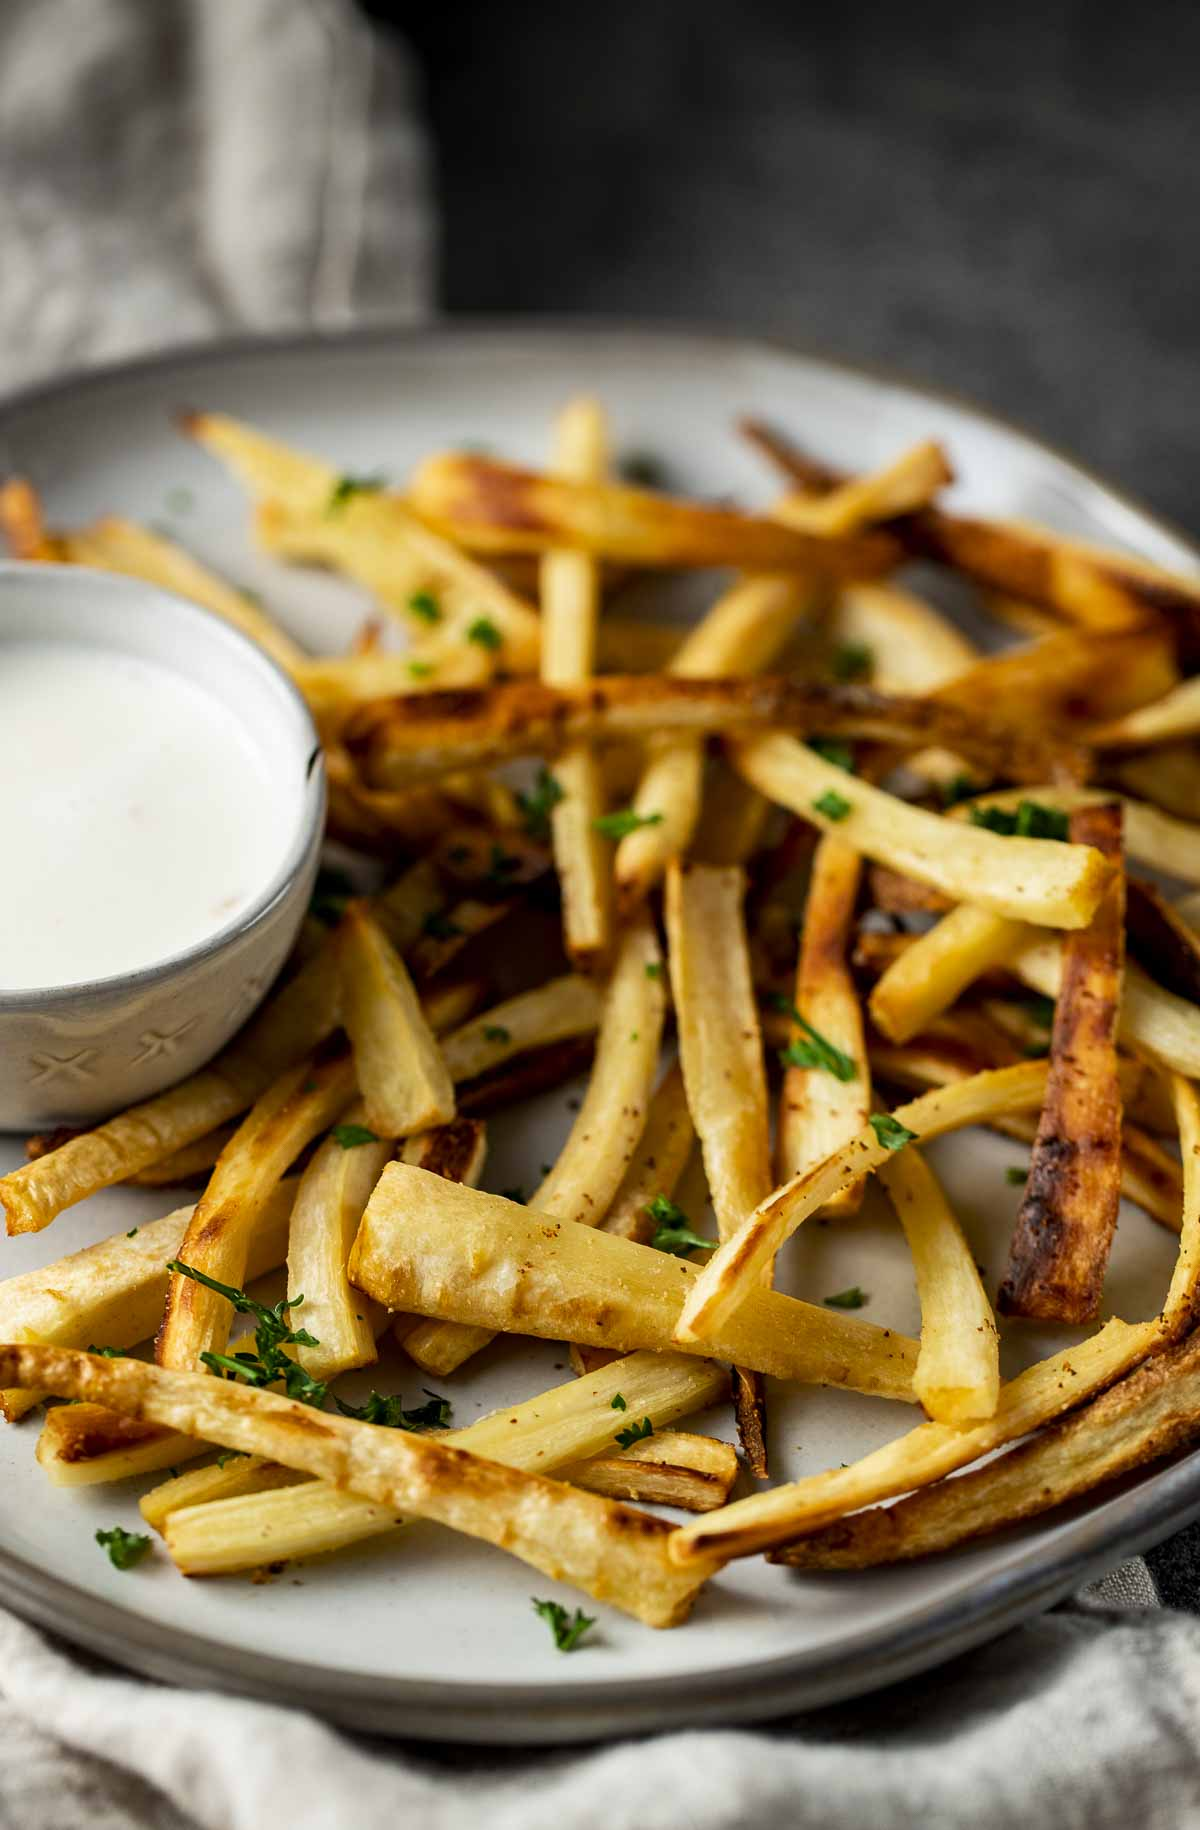 homemade parsnip fries with a side of dipping sauce